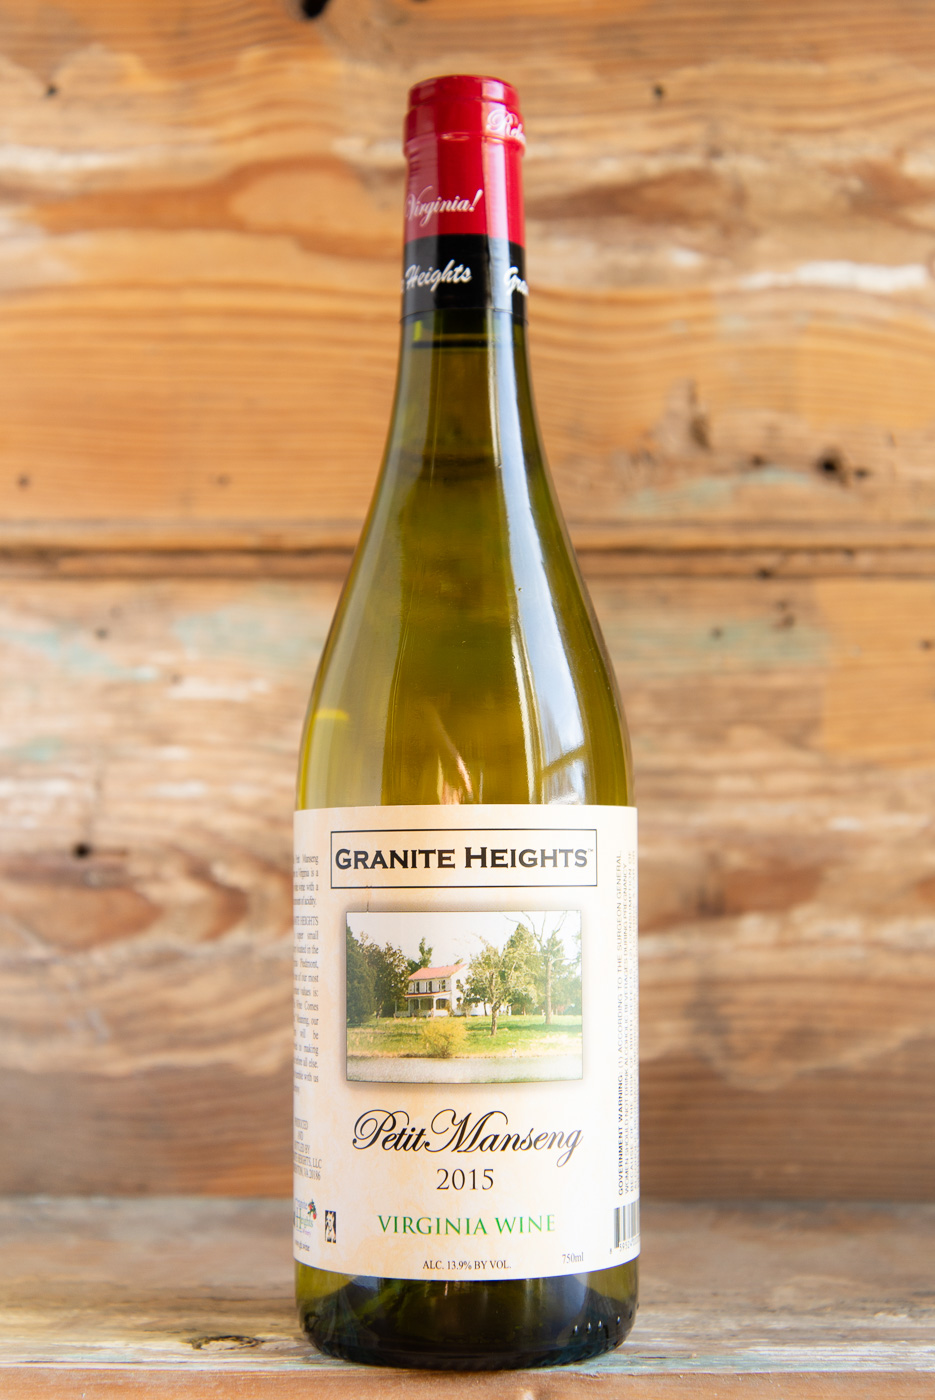 Granite Heights Petit Manseng 2015 - Origin: VirginiaRetail: $19.95 | Sale: $17.95Another offering from Granite Heights, this exotic white variety from southwestern France is grown almost nowhere else in the world. This dry style Petit Manseng expresses tropical fruits and pineapple on the nose with a balanced acid finish. It's fermented and aged completely in stainless. Pair with a variety of dishes including pork, chicken, turkey, or lamb.100% Petit MansengSilver Metal Winner 2017 Virginia Governor's Cup